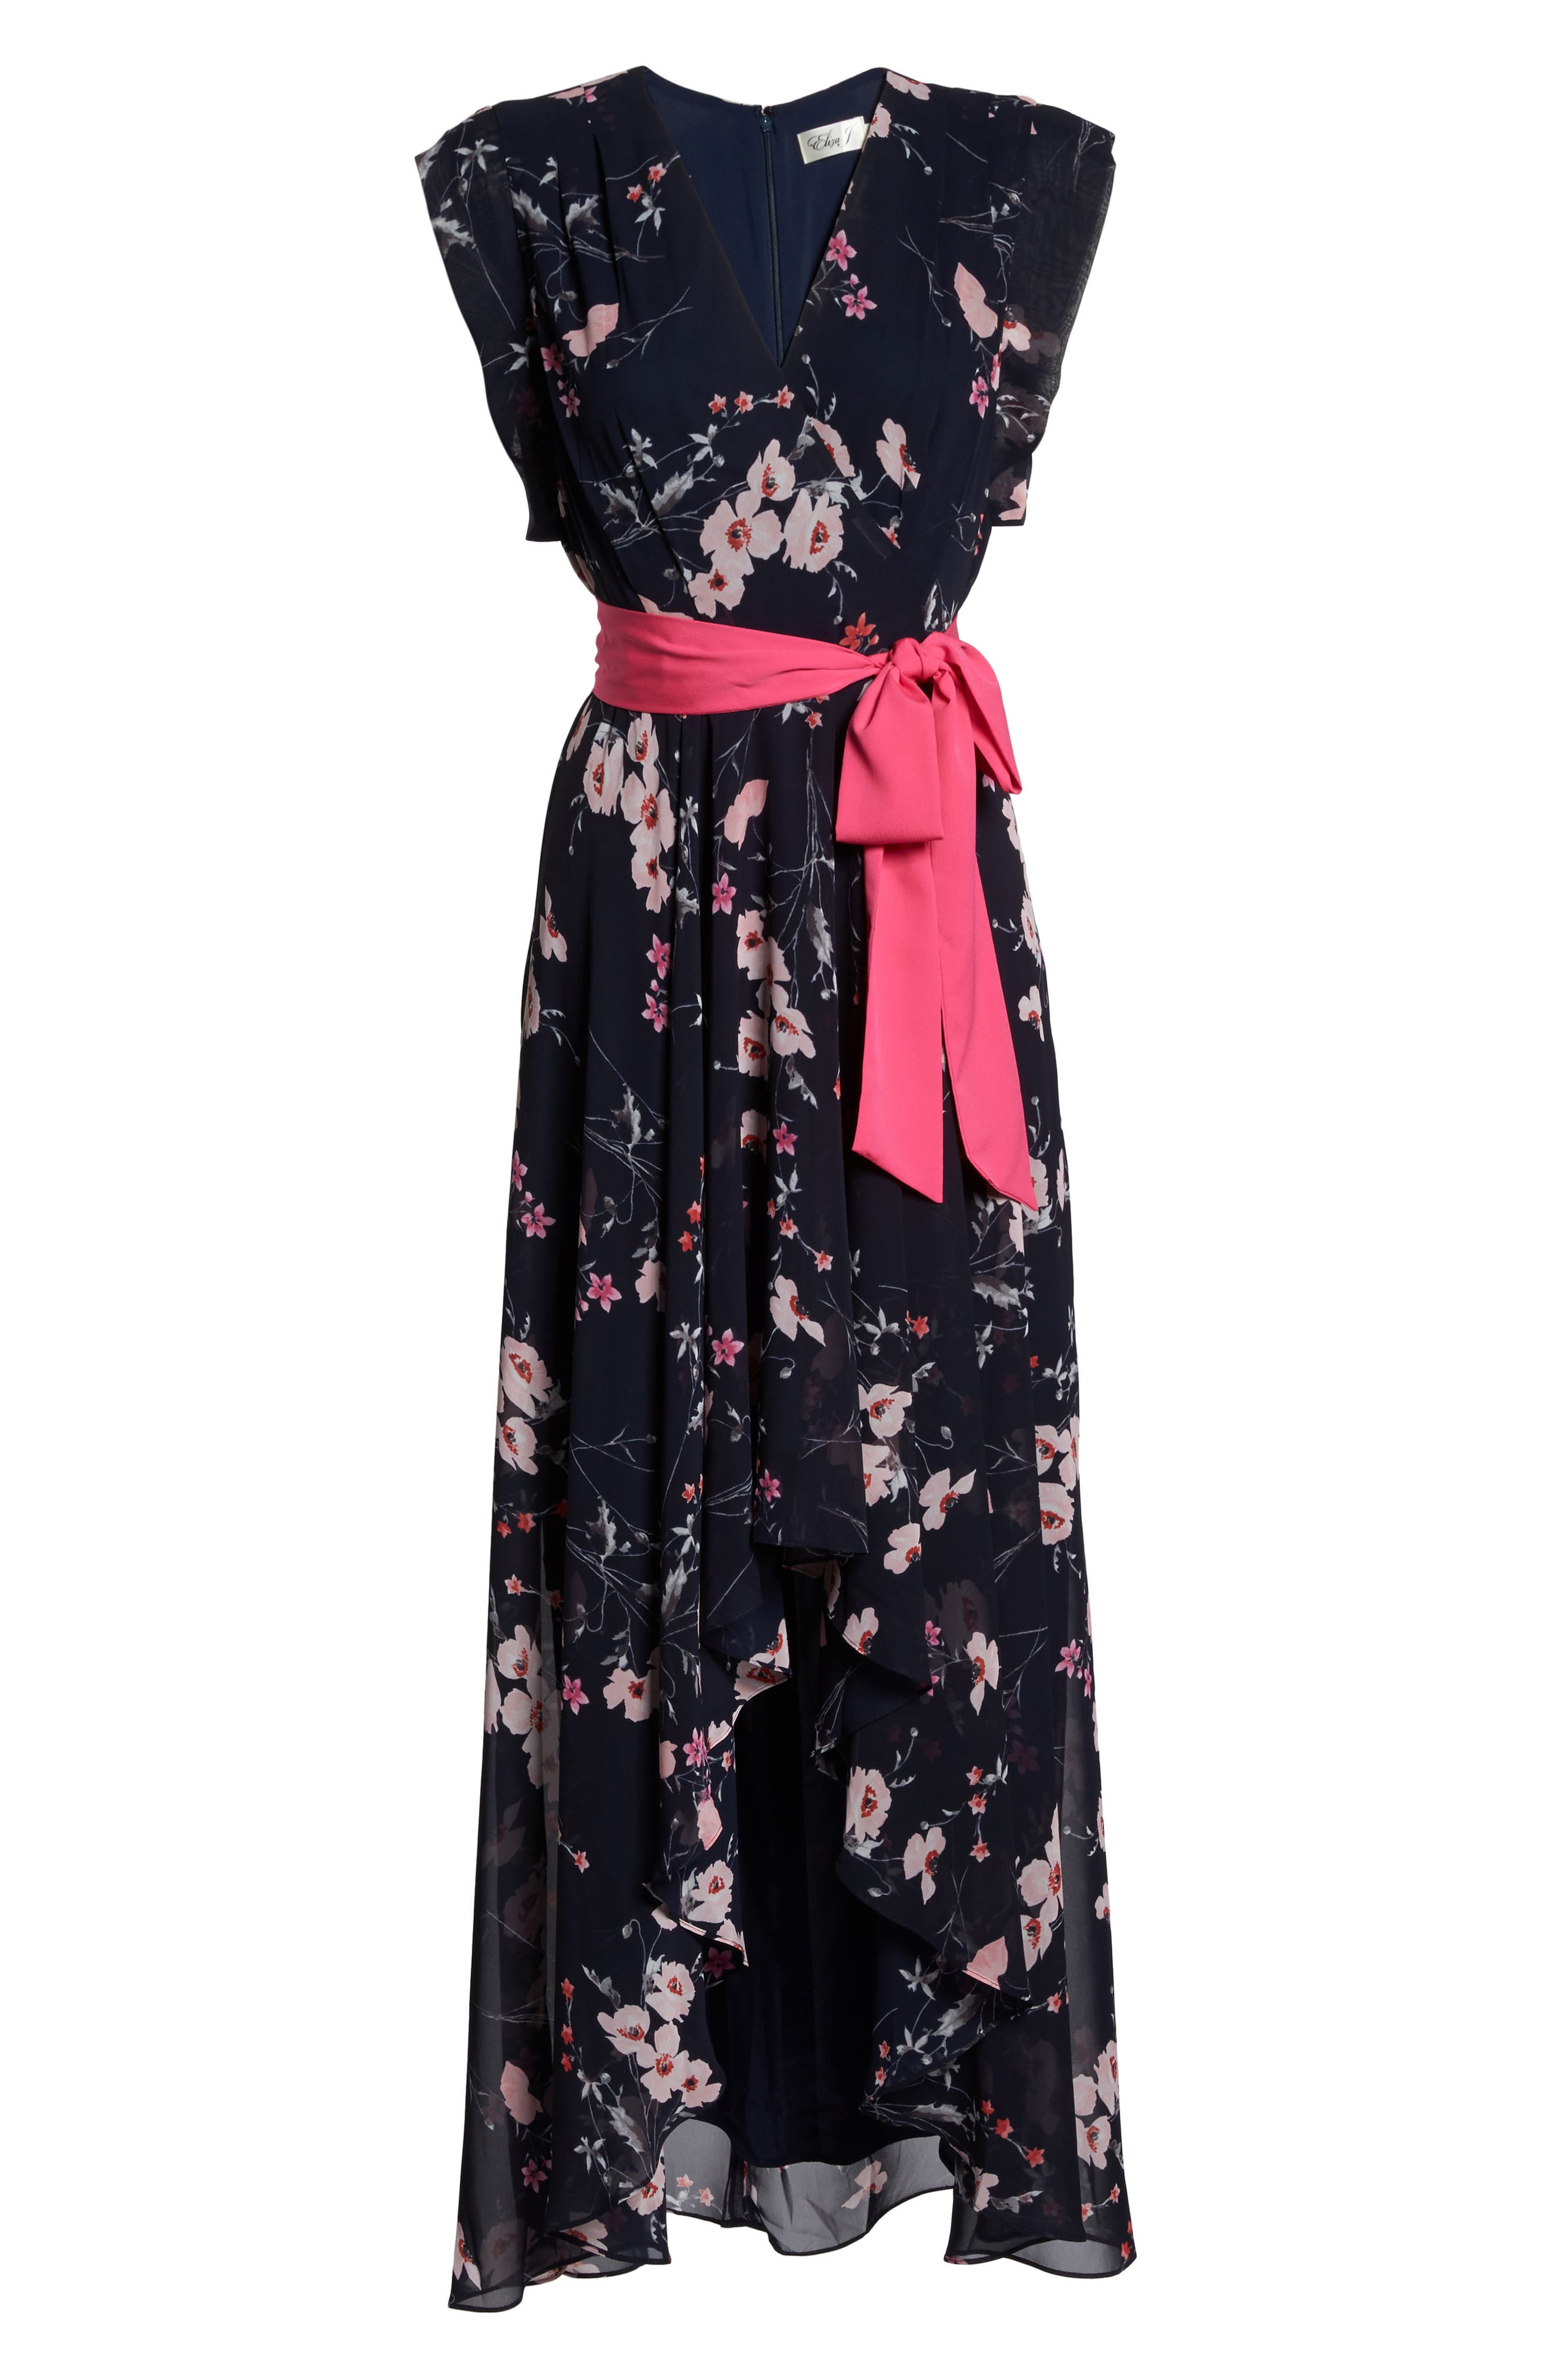 ELIZA J, High/Low Floral Faux Wrap Dress, Alternate thumbnail 7, color, NAVY/ PINK